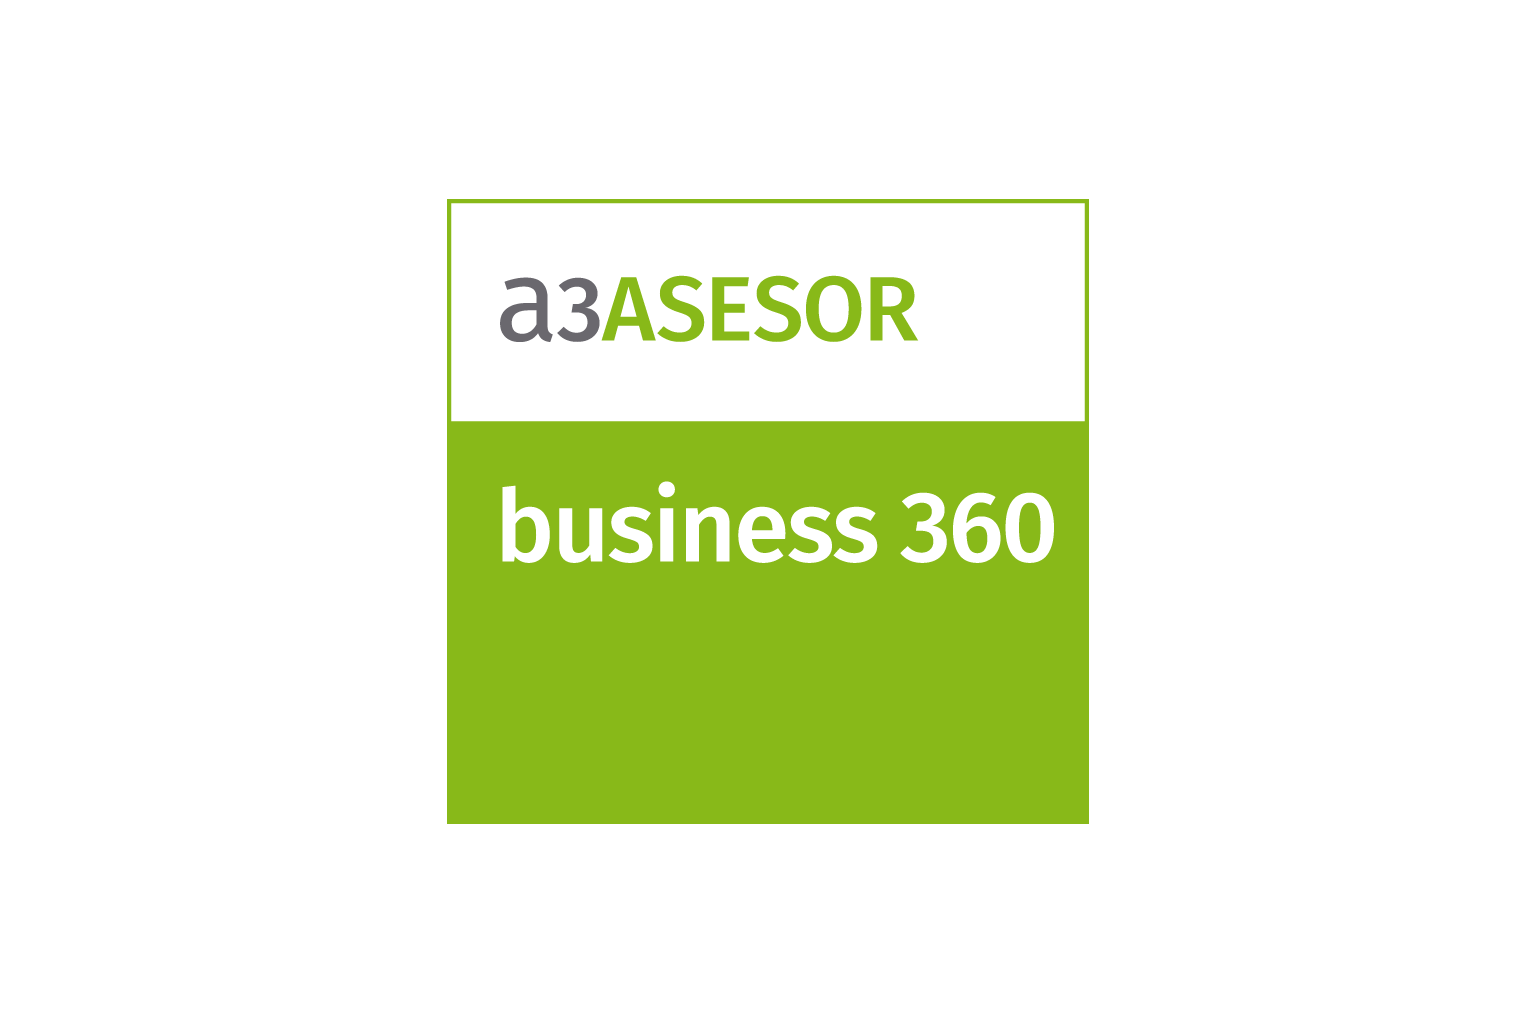 a3ASESOR-business-360